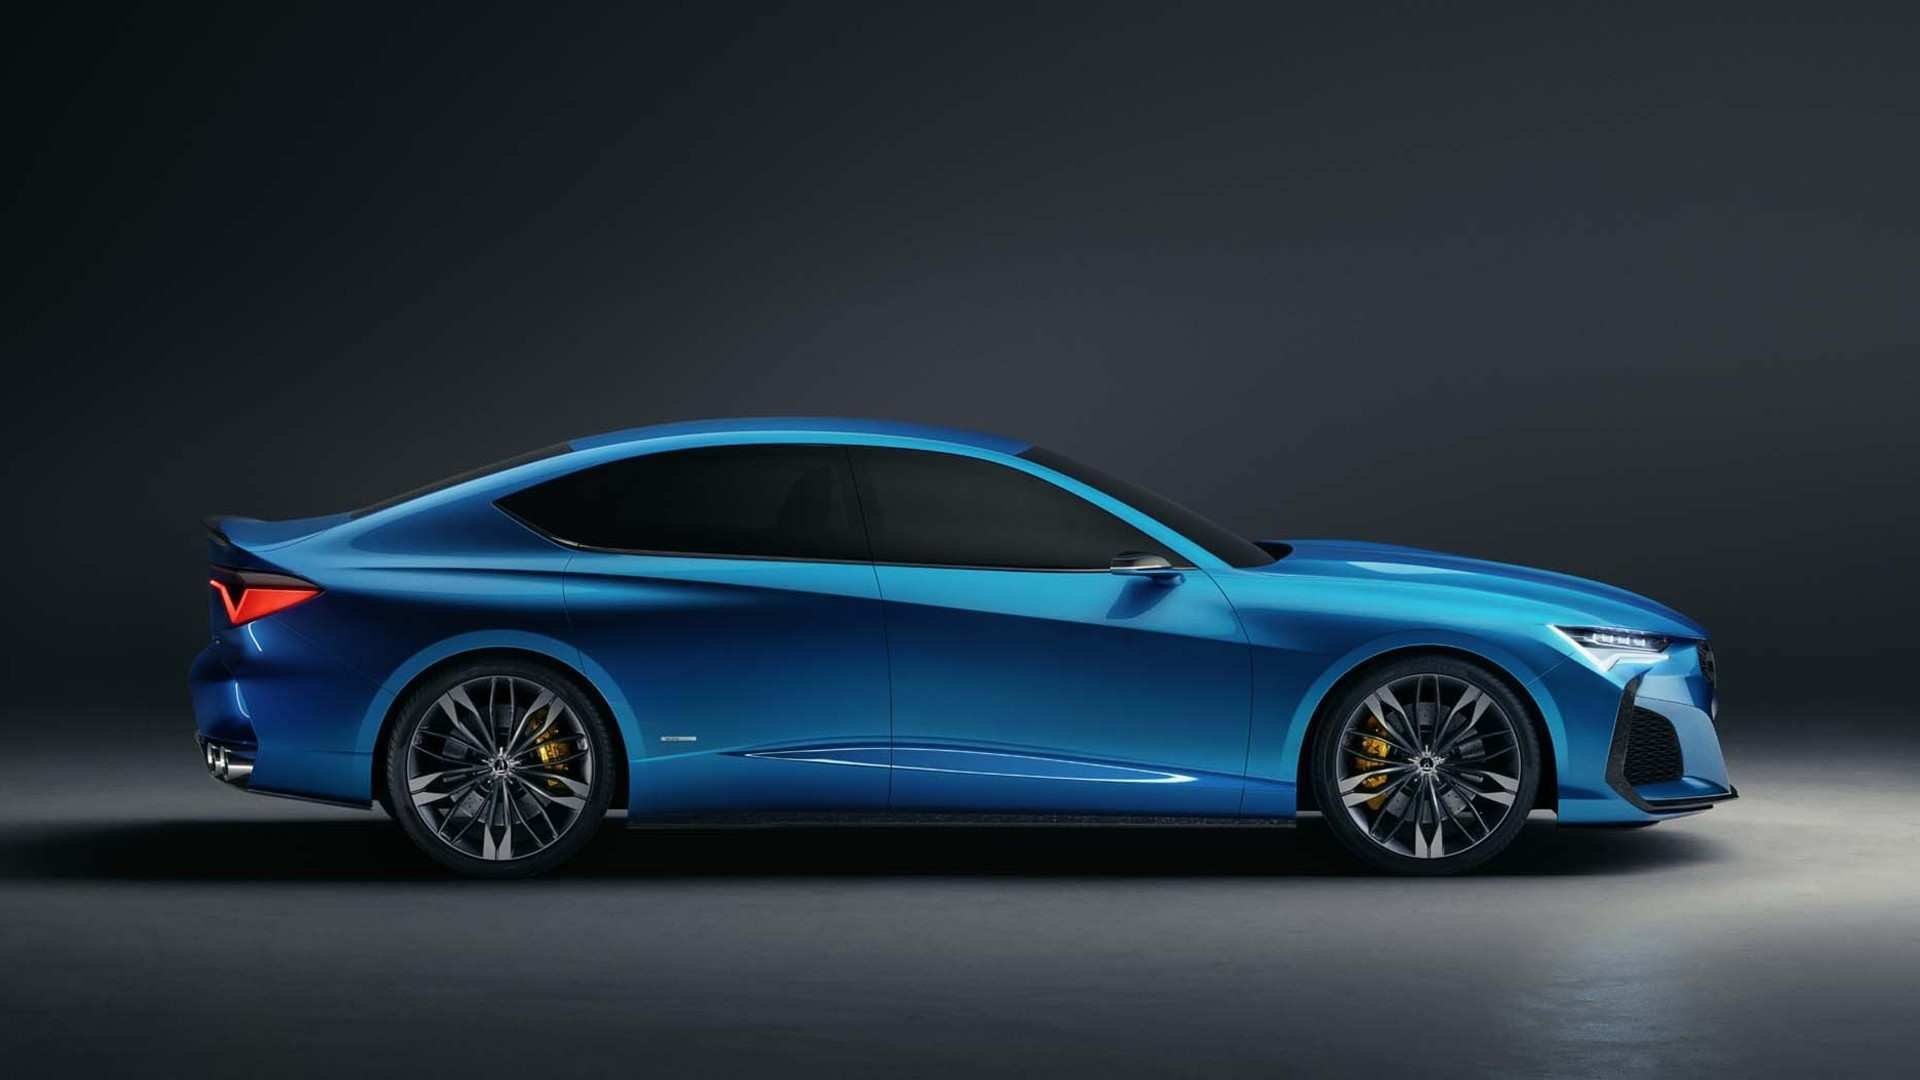 49 All New Acura S Type 2020 Redesign